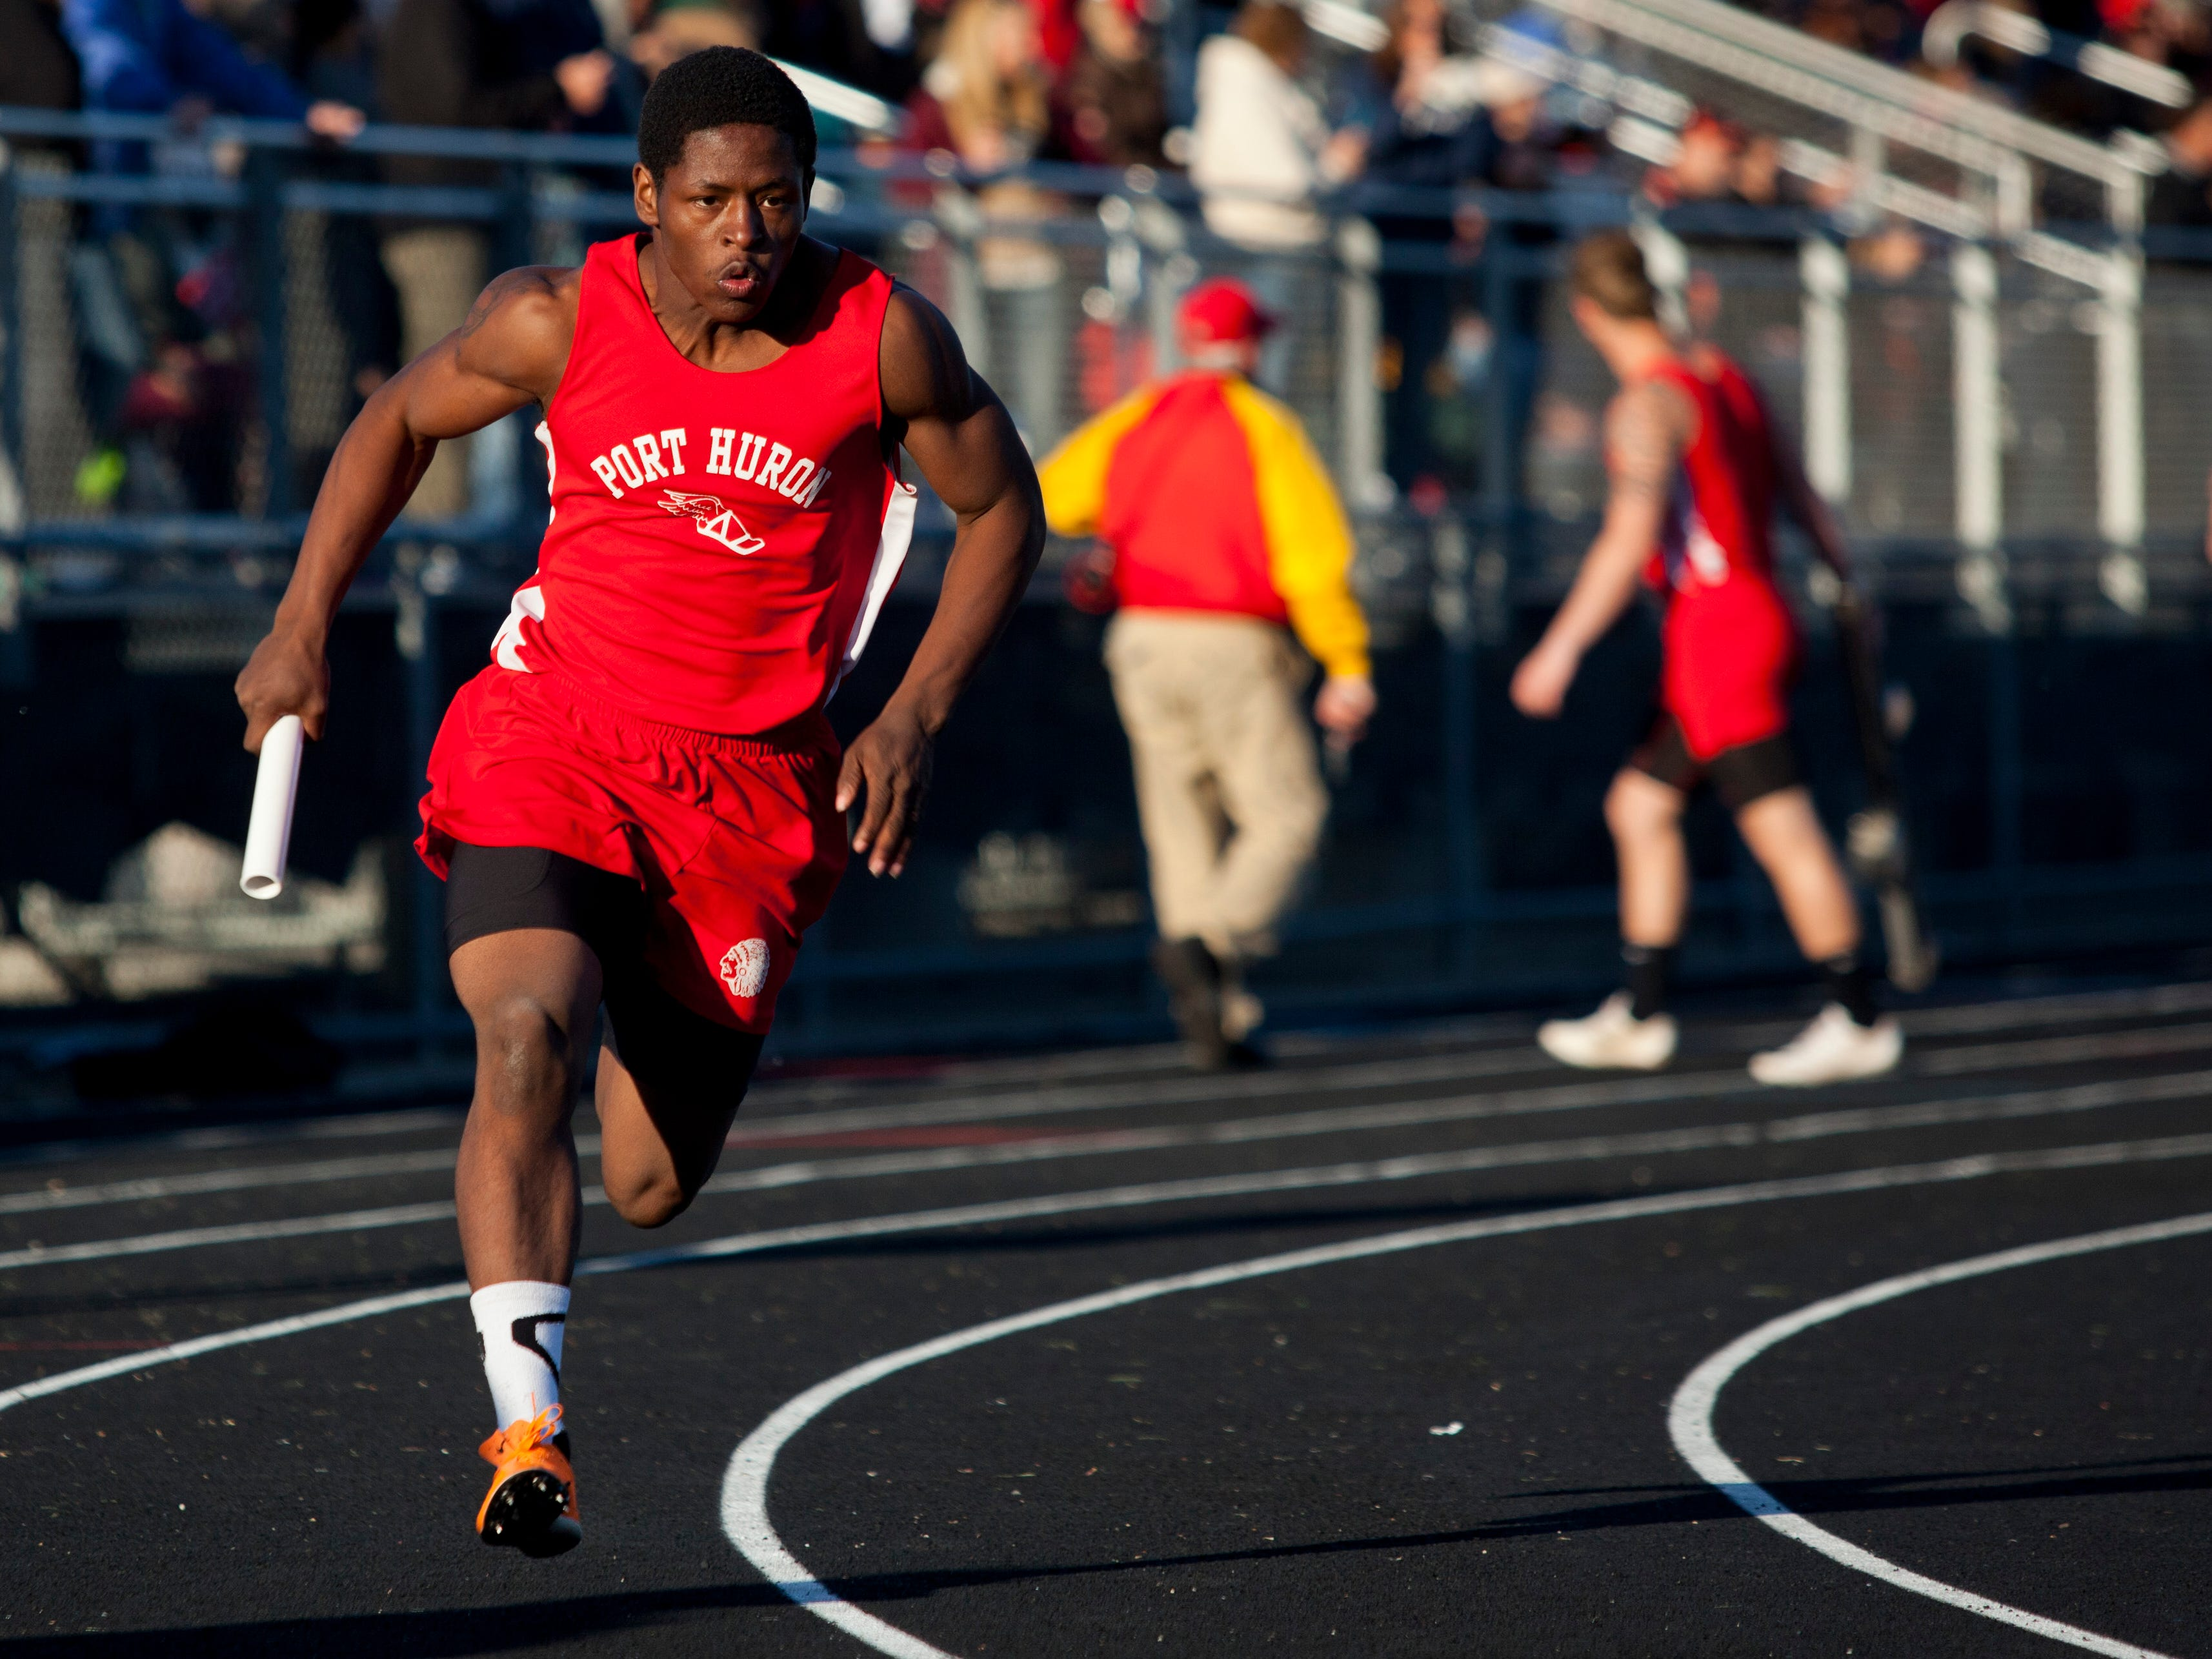 Port Huron junior Jermaine Drake competes in the 400-meter relay during the Meet of Champions Friday, May 22, 2015 at Marysville High School.